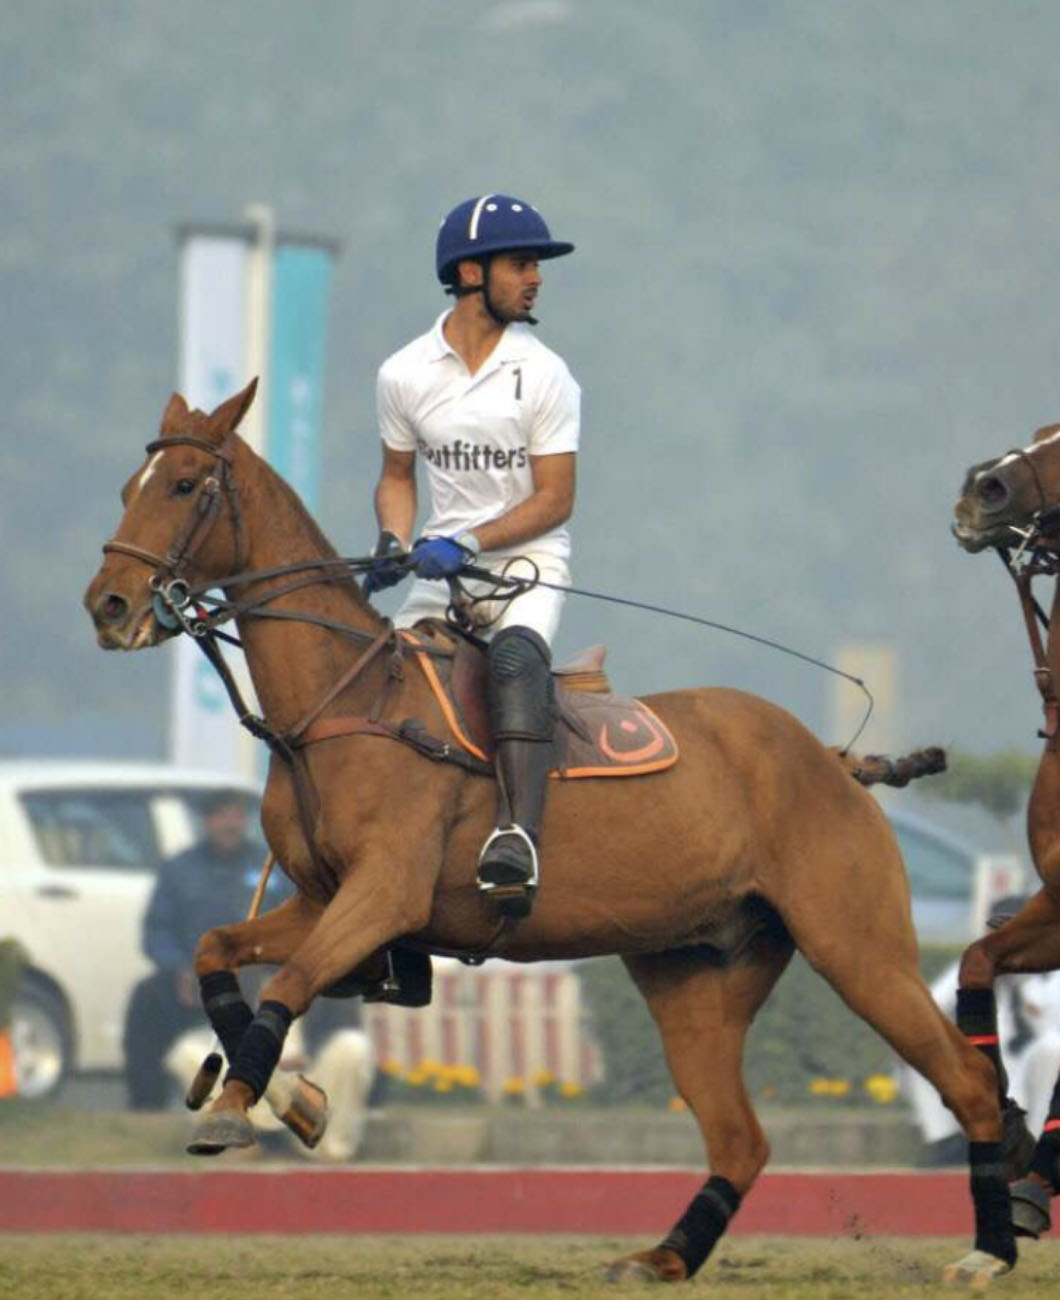 polo-game-in-pakistan-la-polo